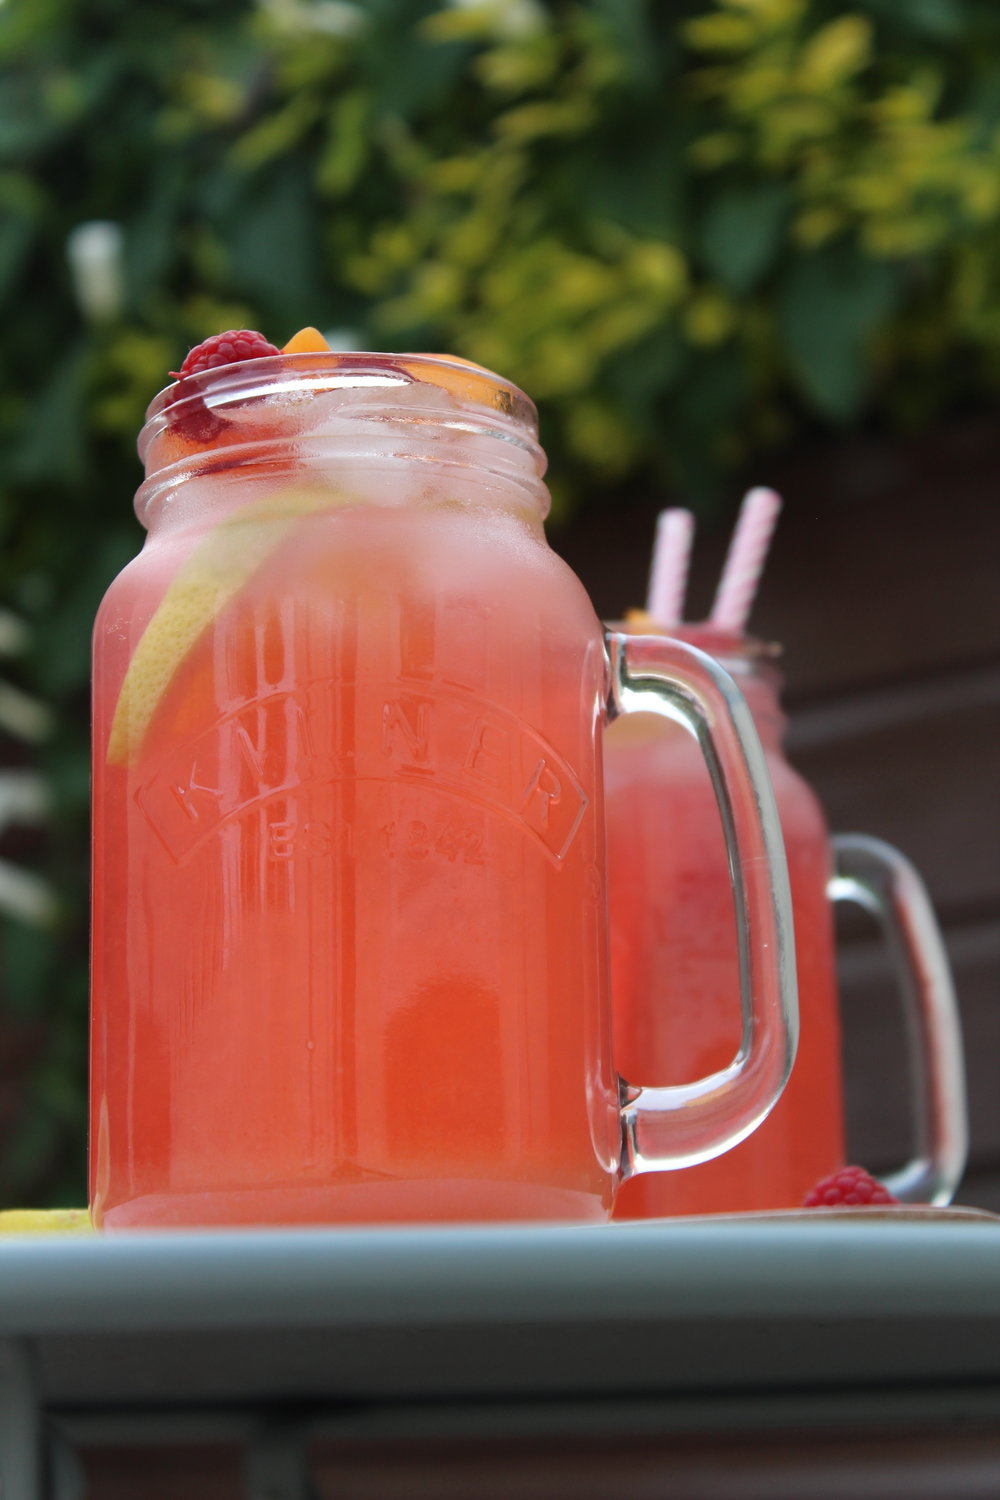 Honey-apricot-raspberry-lemonade.JPG